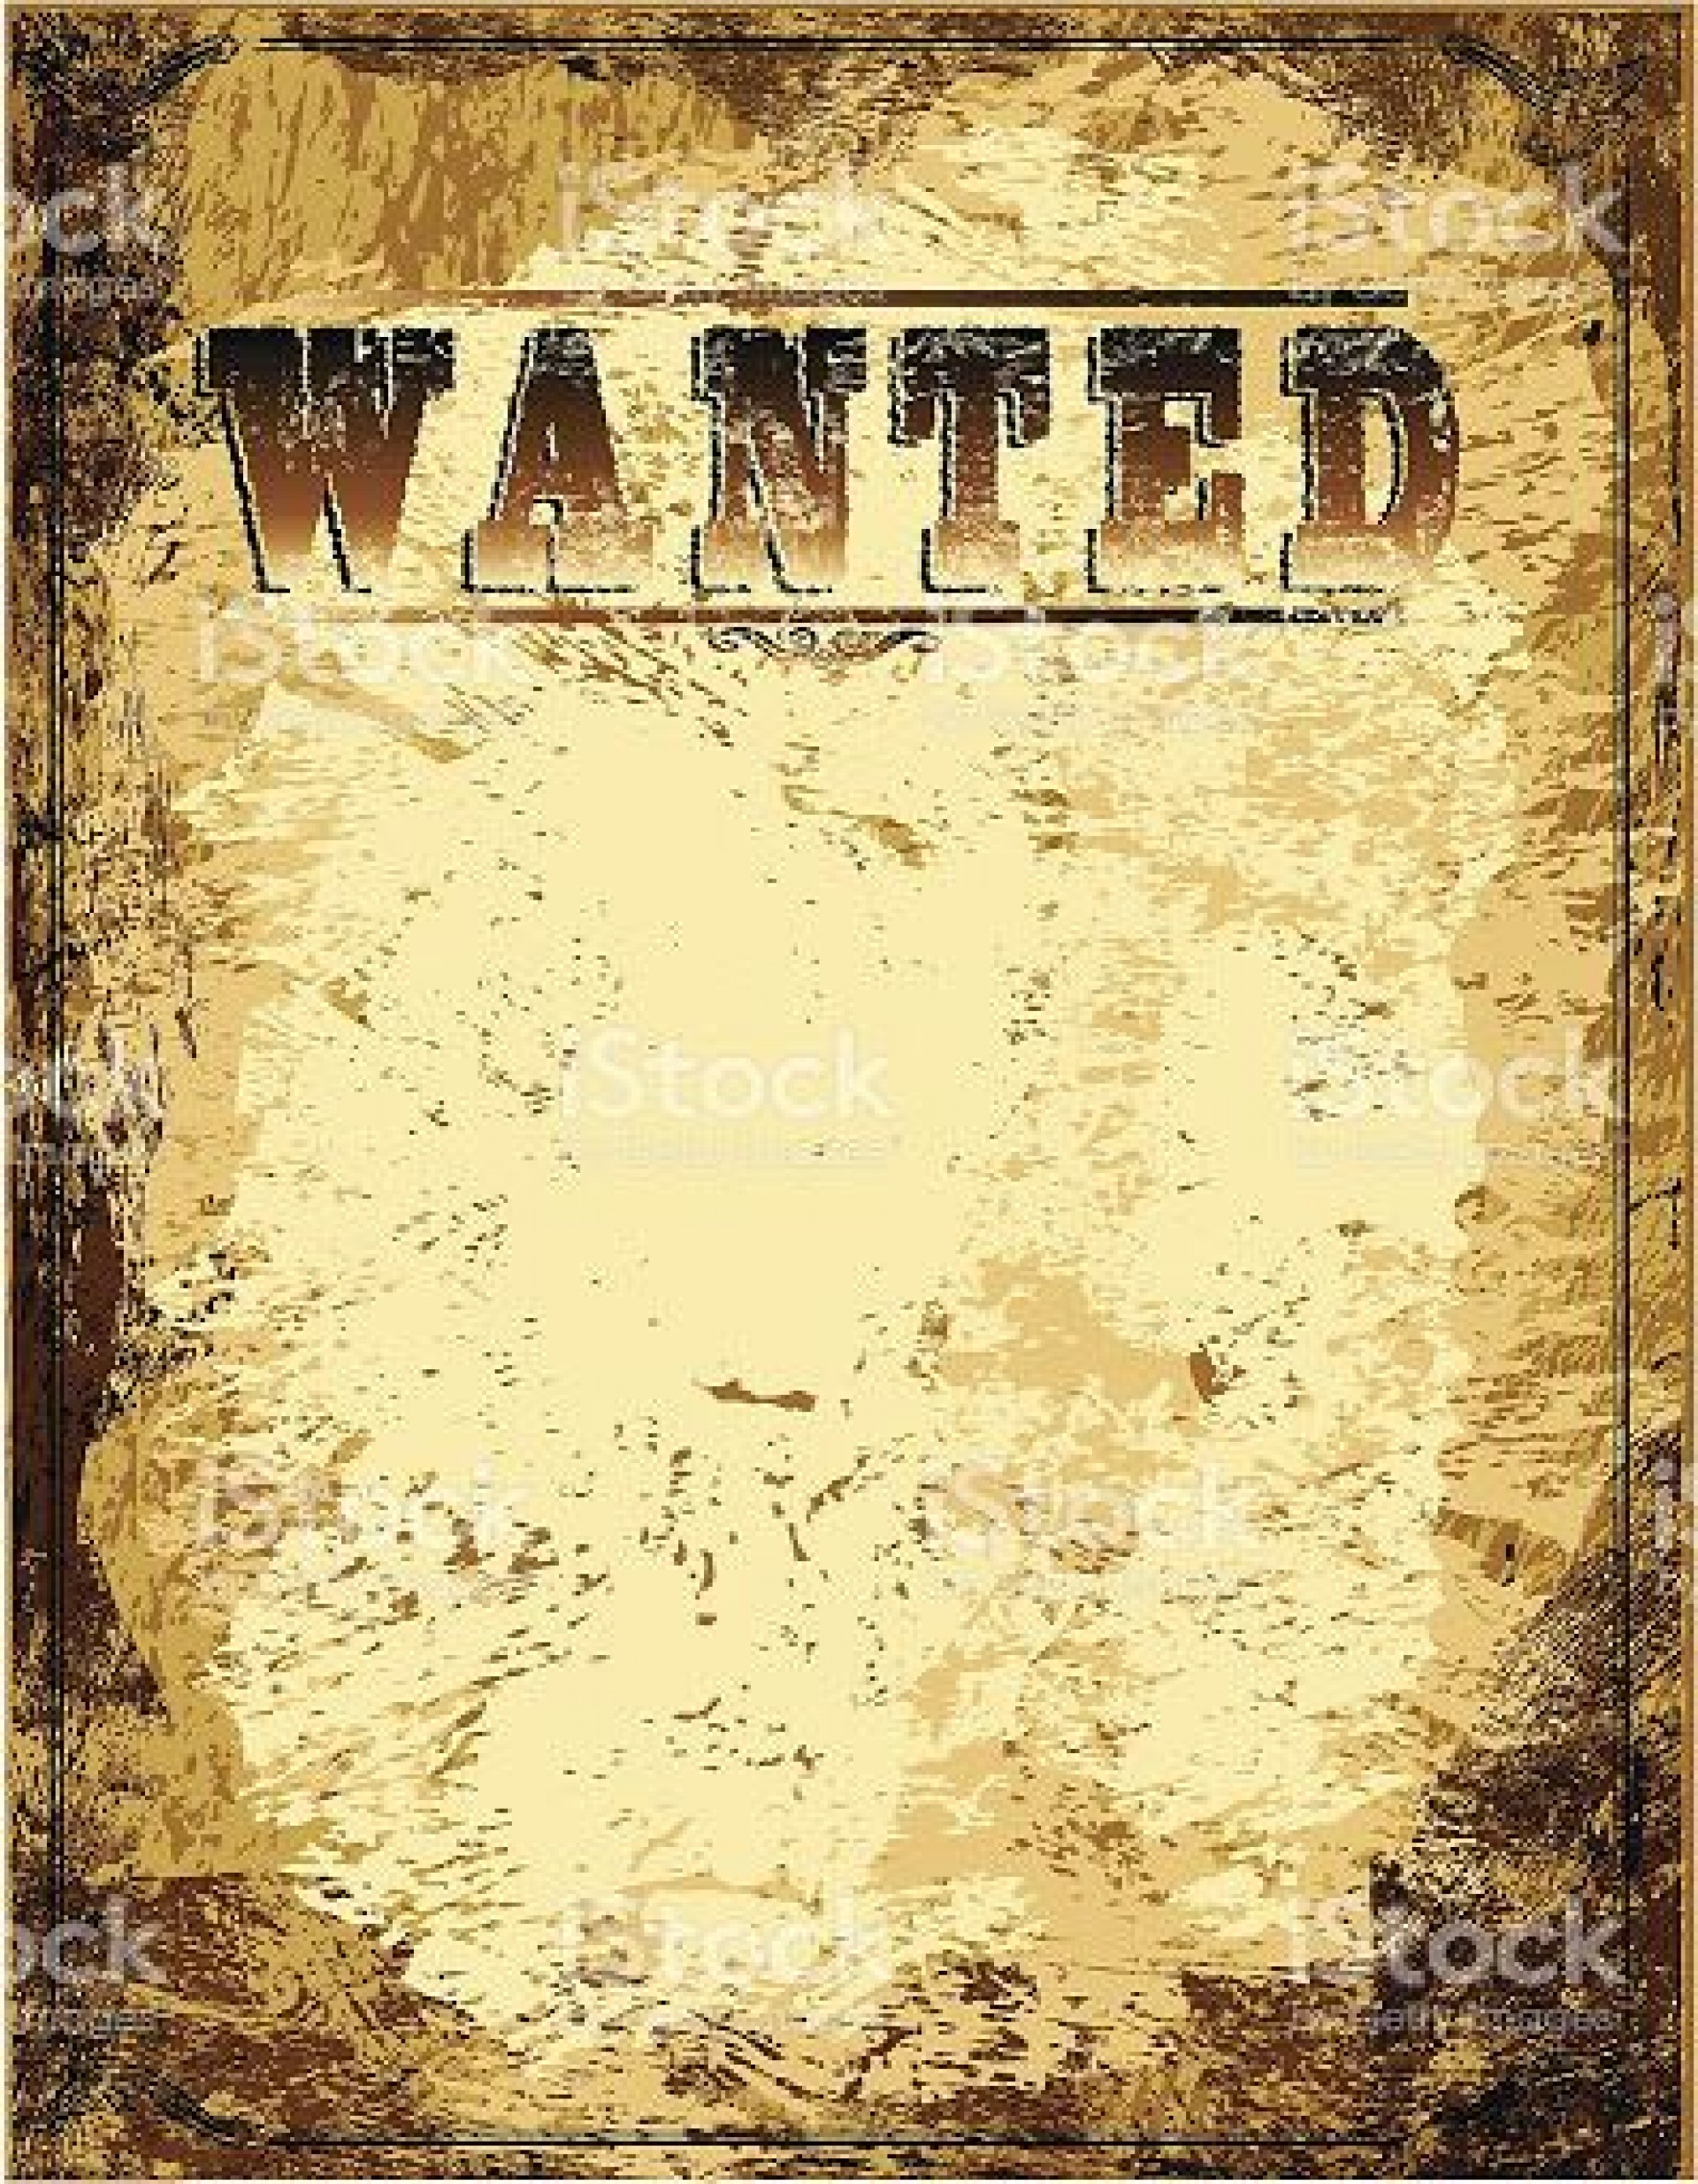 007 Awesome Free Wanted Poster Template Concept  For Microsoft Word Download Student1920